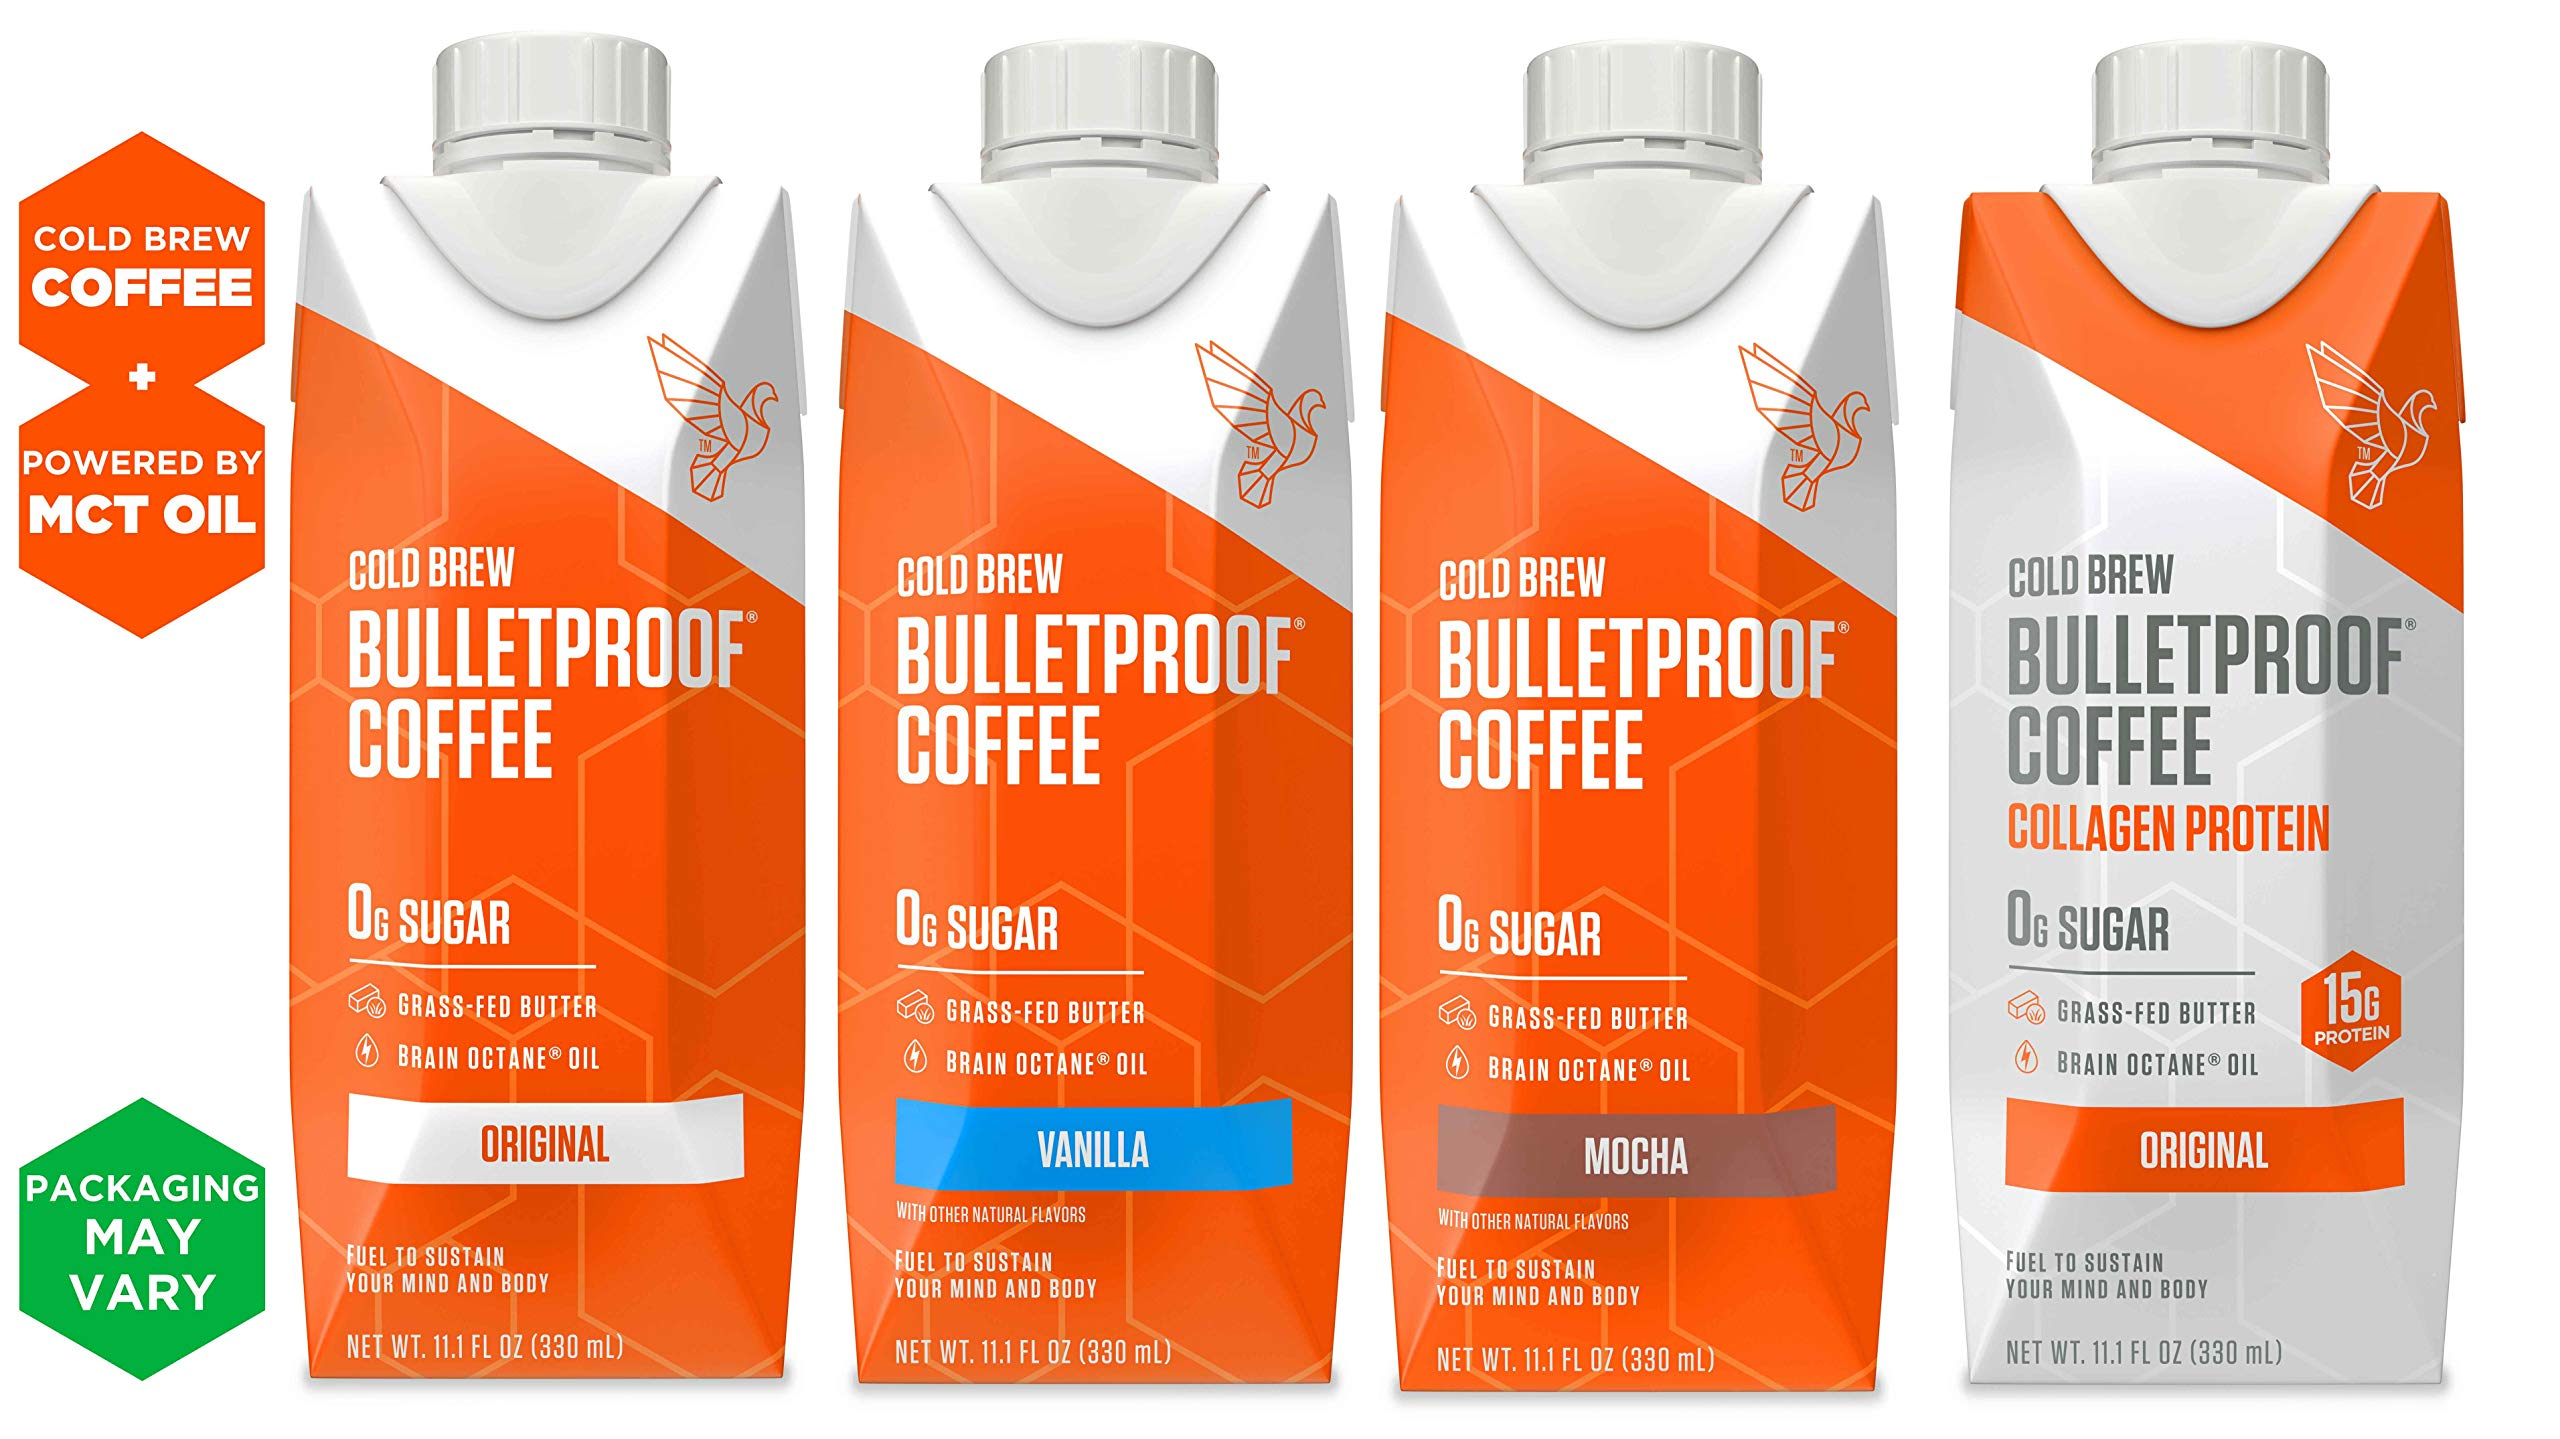 Bulletproof Cold Brew Coffee Sampler 4-pack, Keto Friendly, Sugar Free, with Brain Octane oil and Grass-fed Butter (4 Pack). by Bulletproof